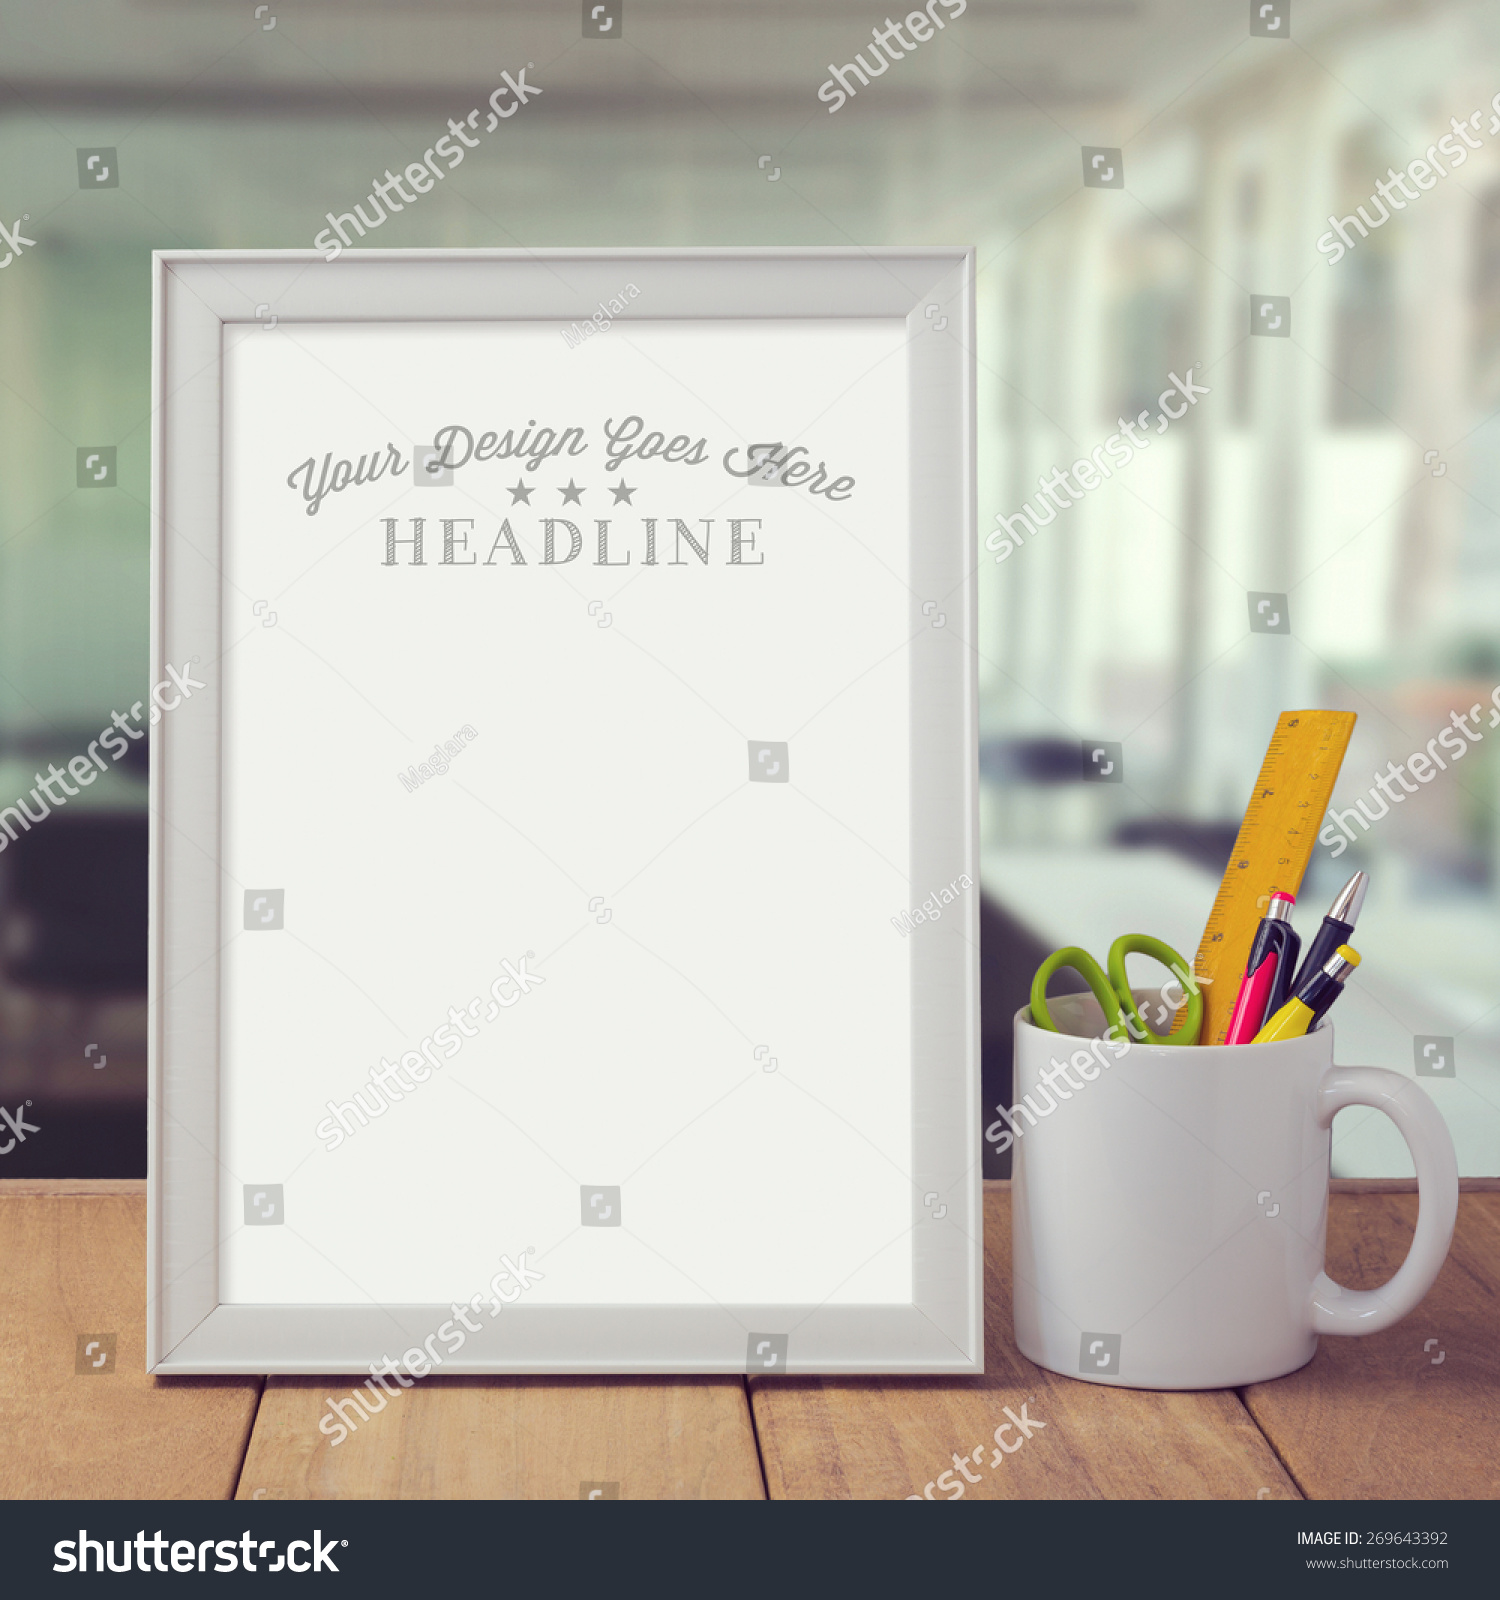 poster mock template over office background stock photo  poster mock up template over office background